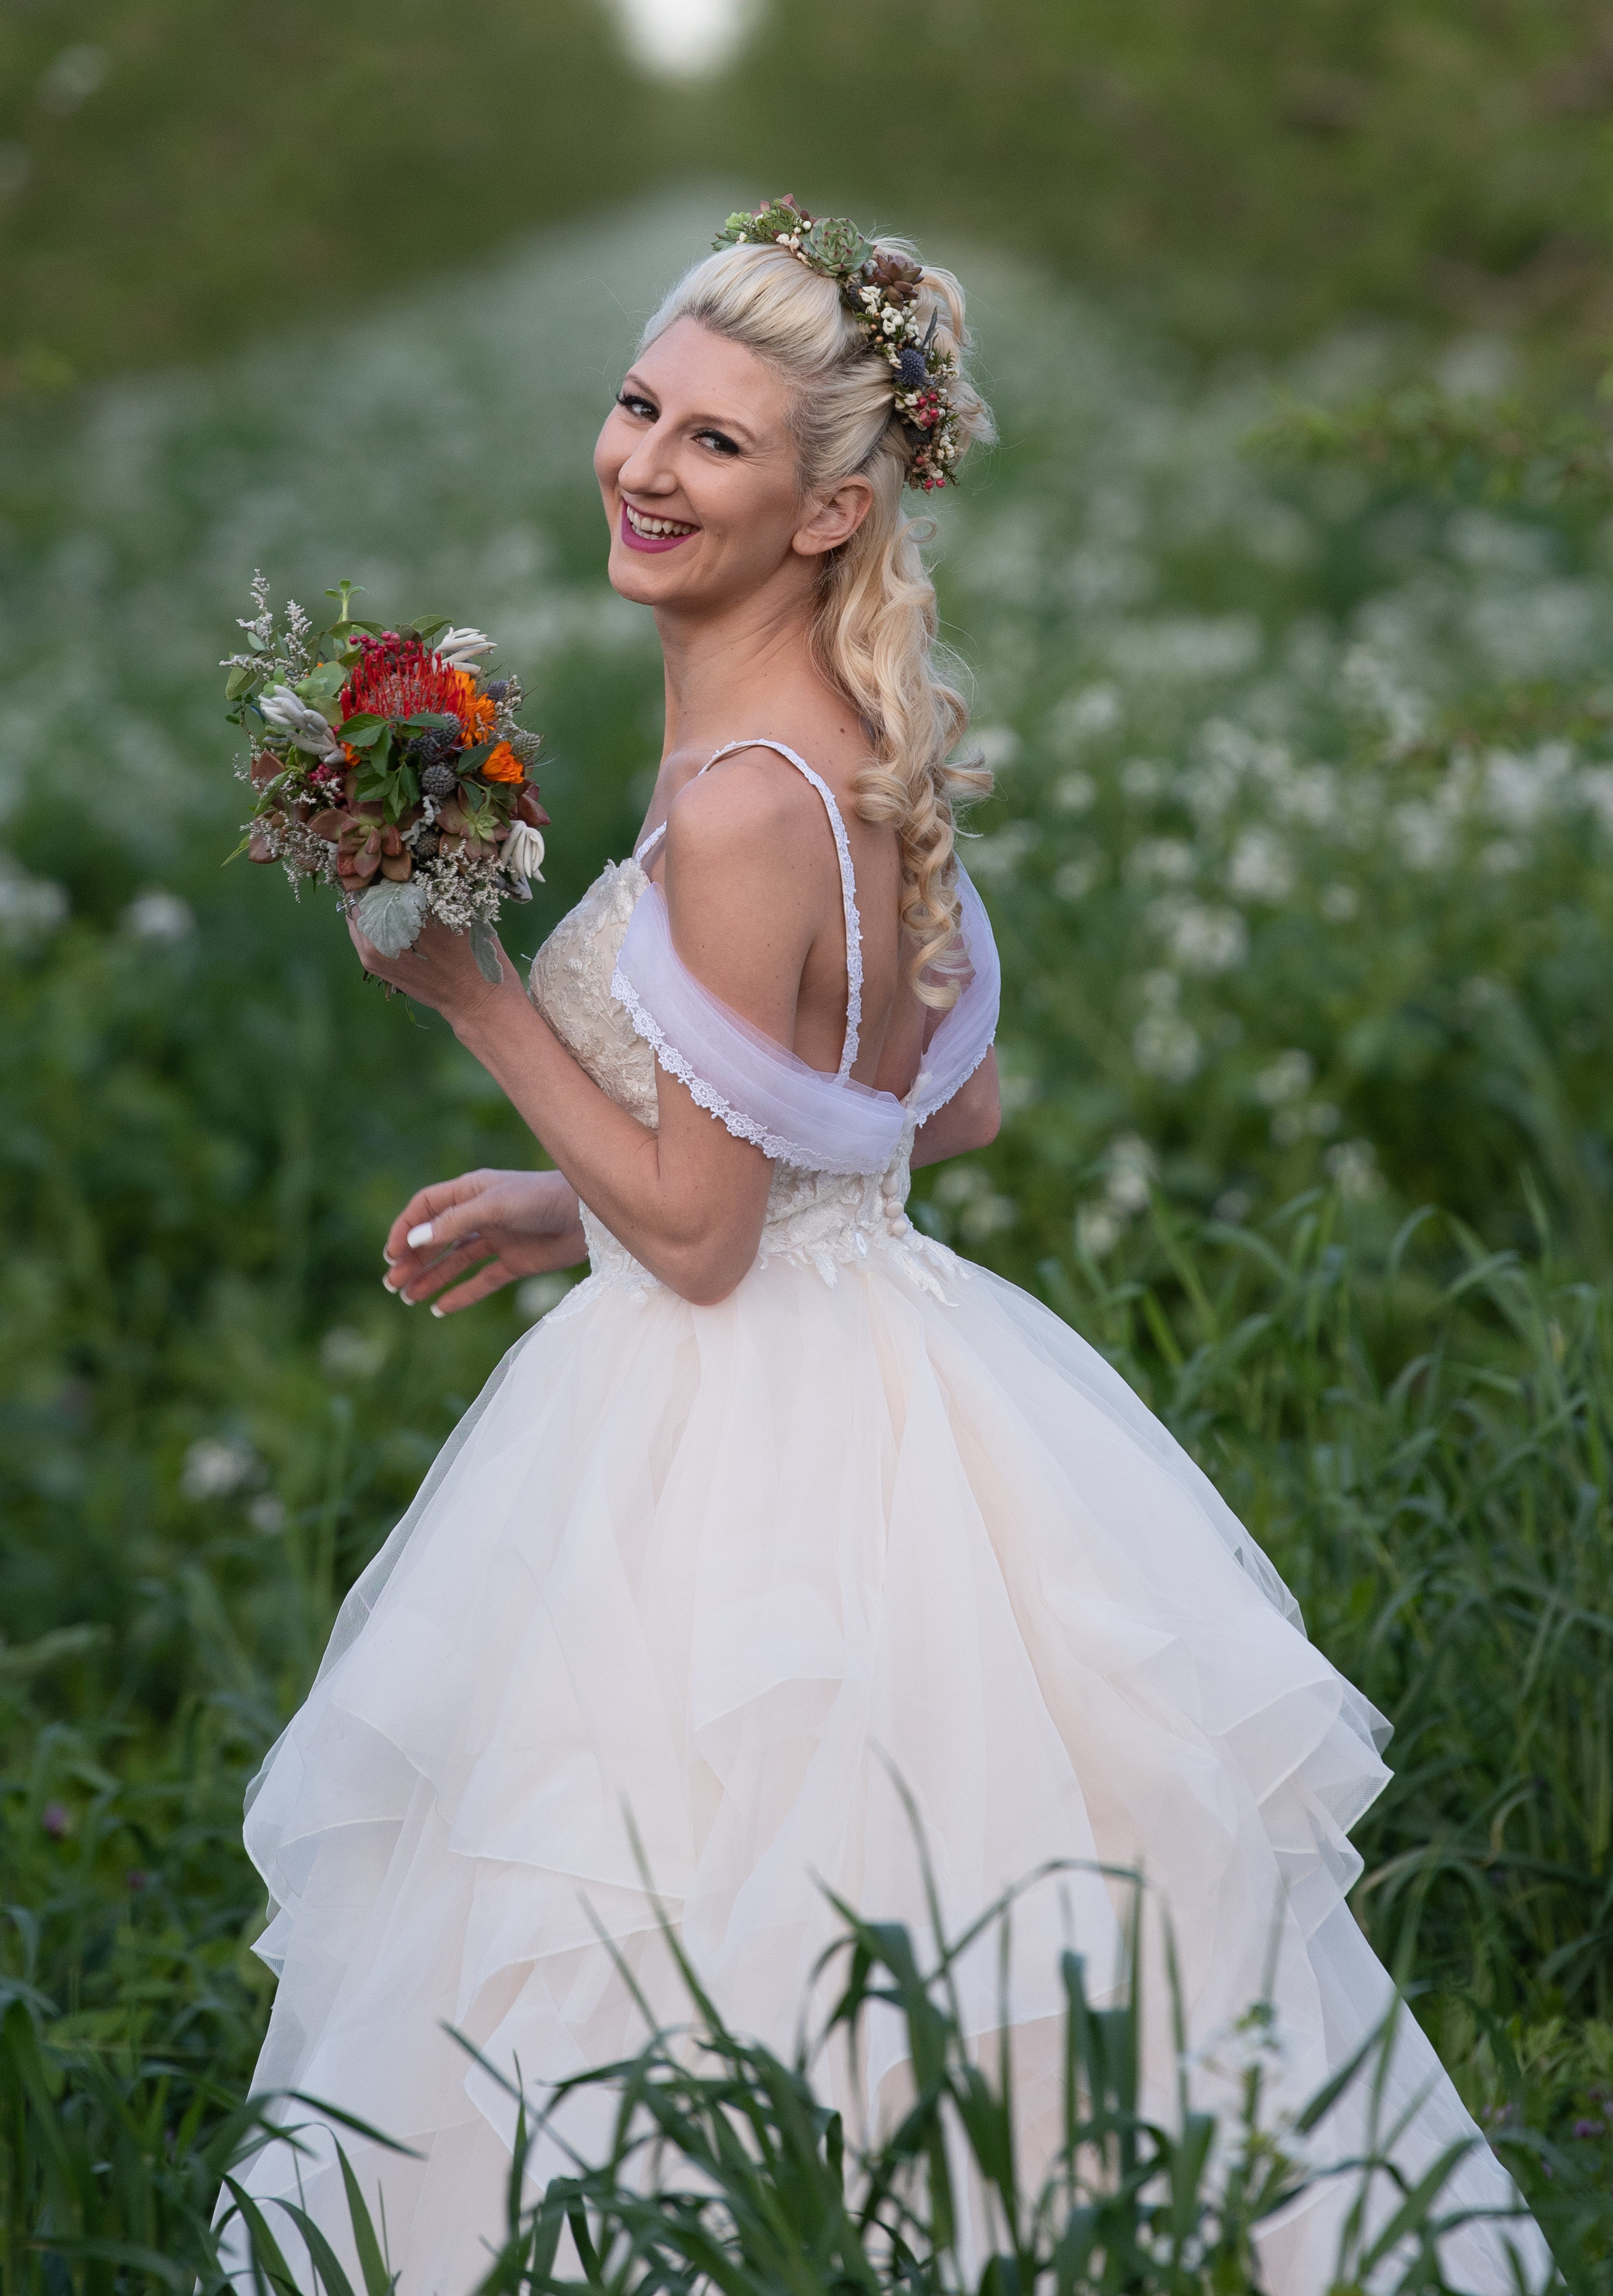 vegan bride